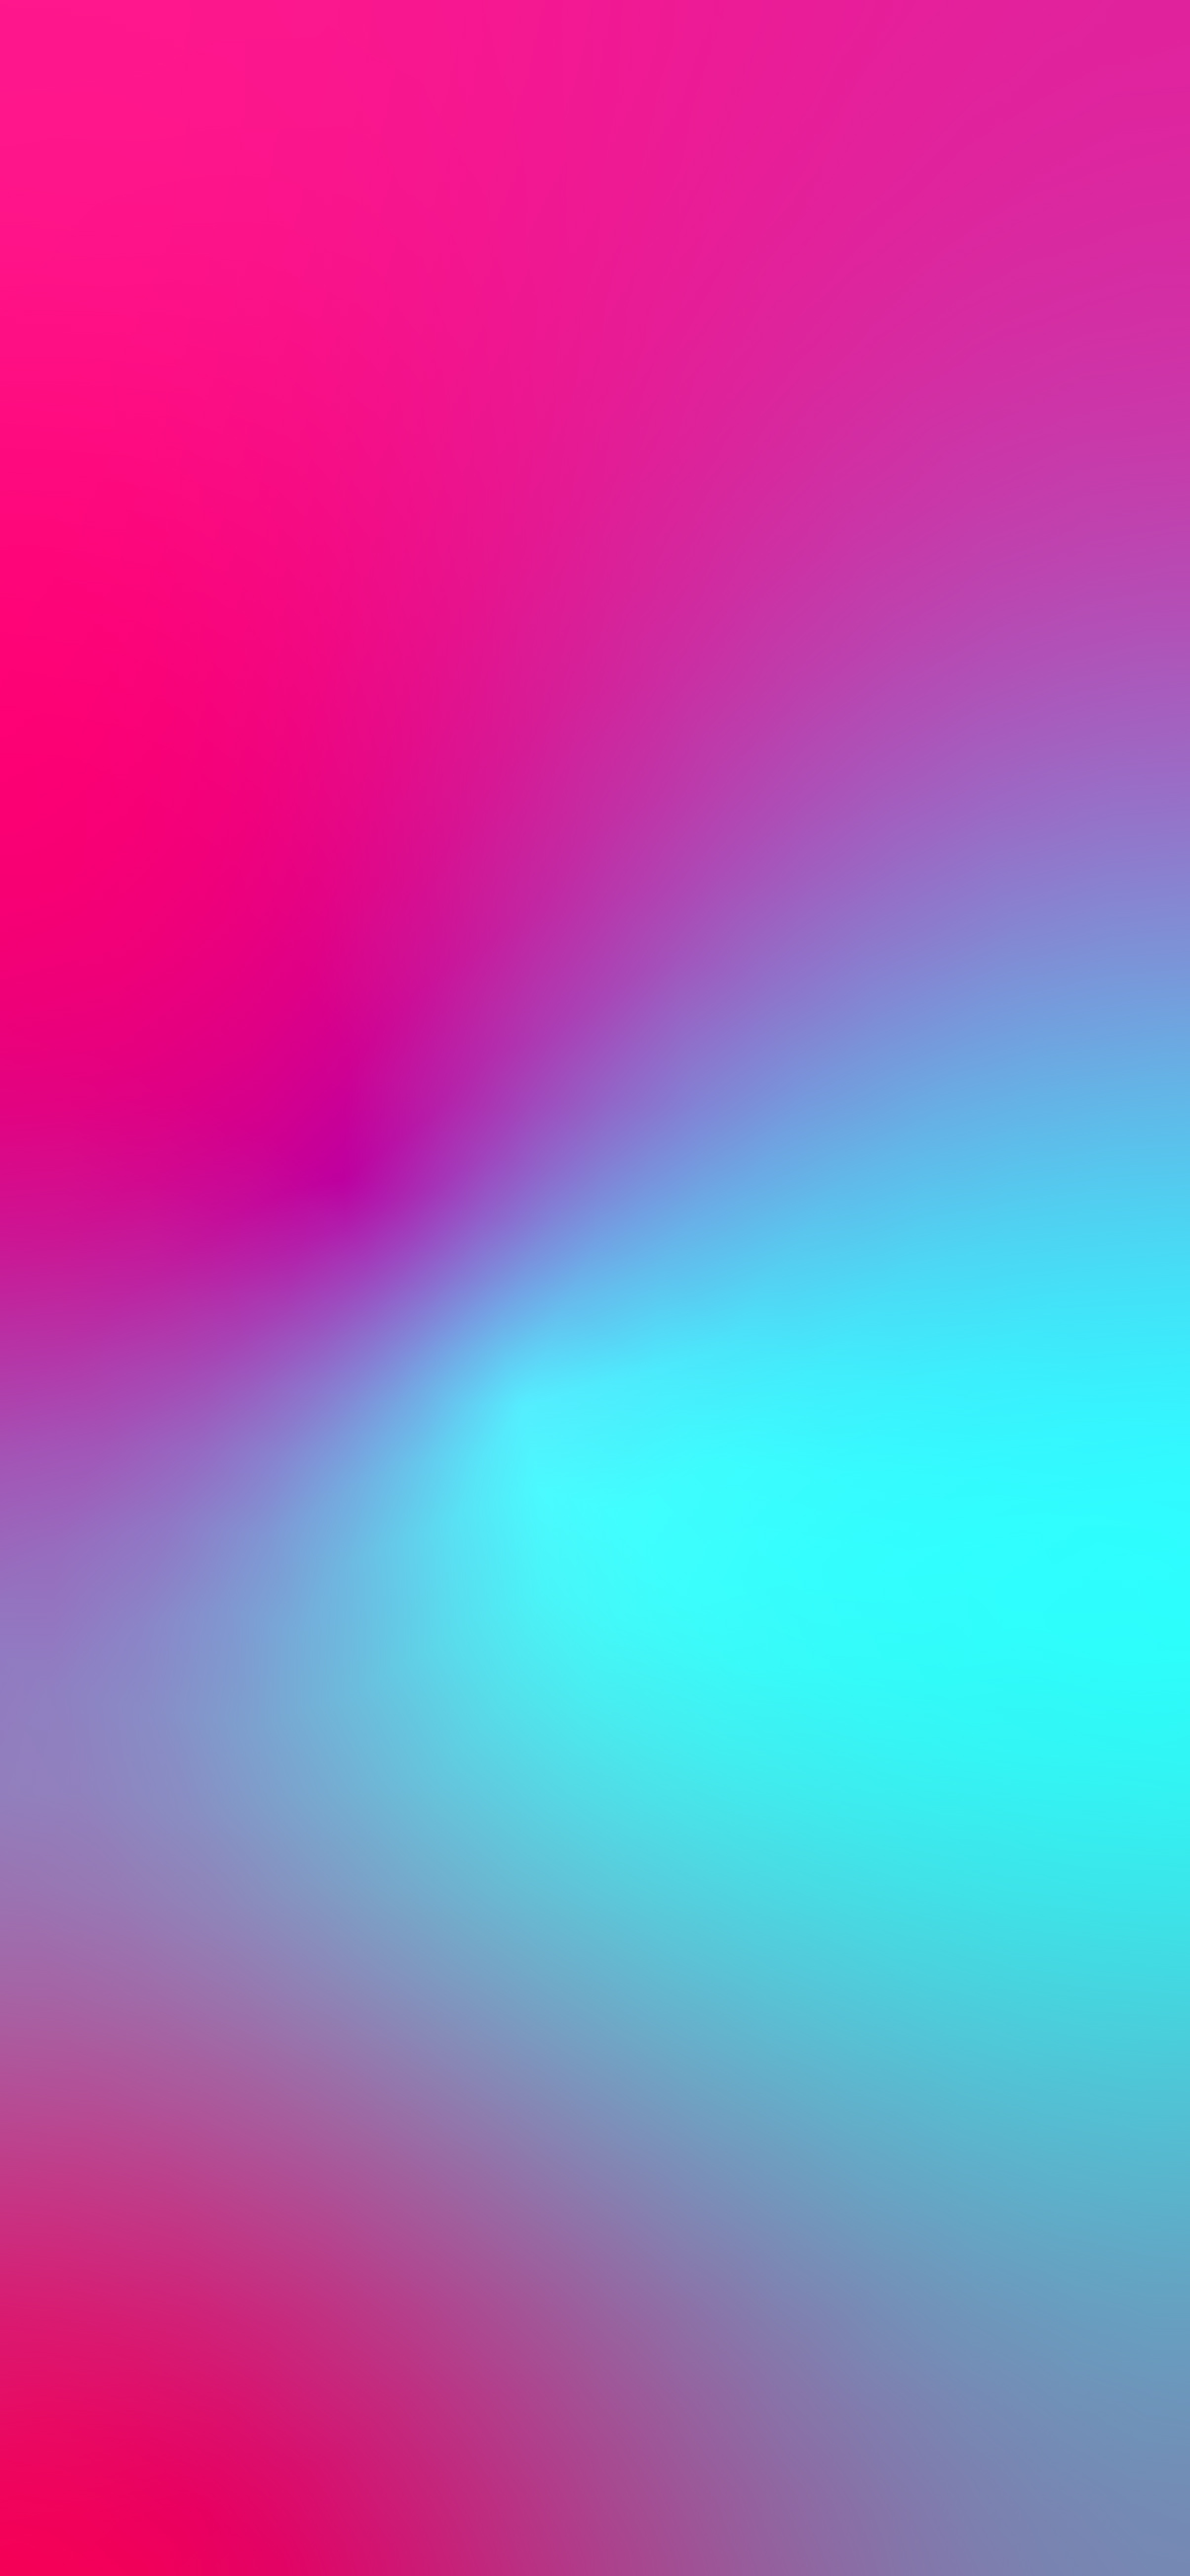 GRADIENT IPHONE WALLPAPER